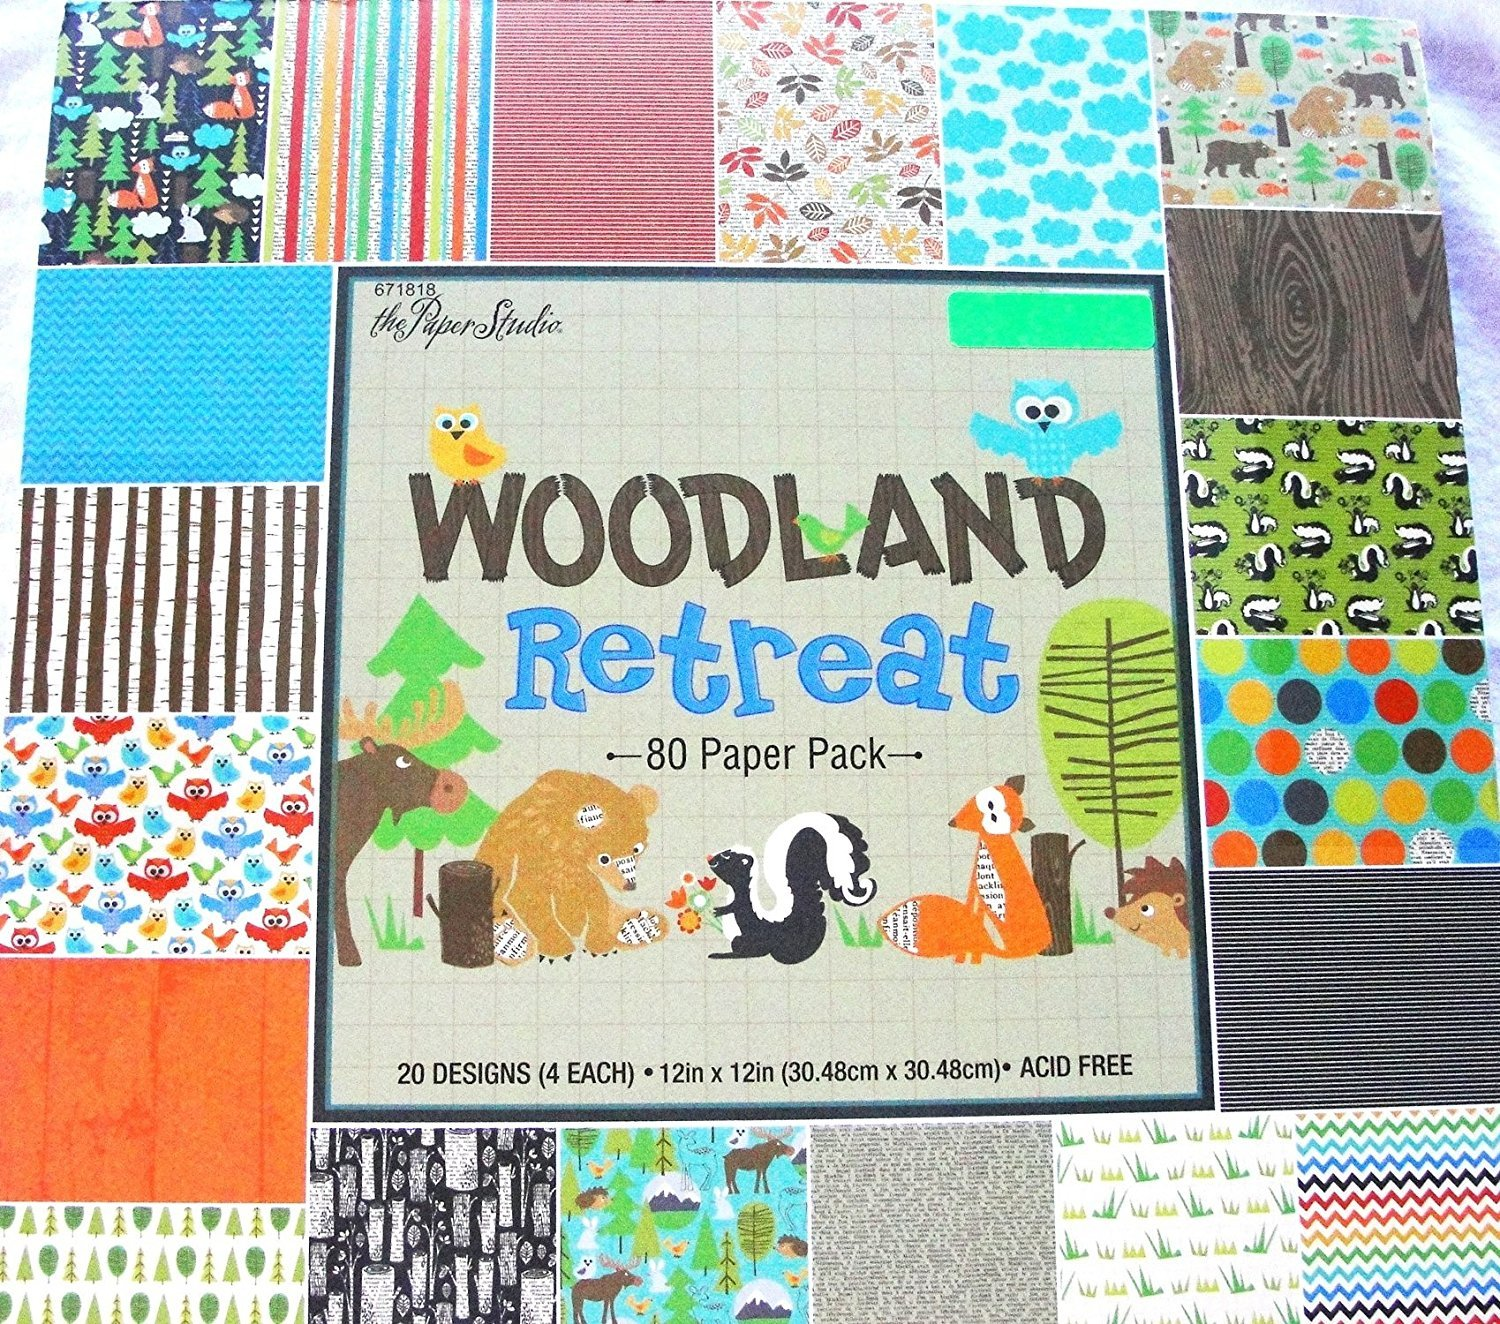 Woodland Retreat 12x12 Scrapbooking Paper Pack, Fox, Moose, Bear, Skunk, Owl, Trees etc. 80 sheets by Paper Studio B00WR8K4OK